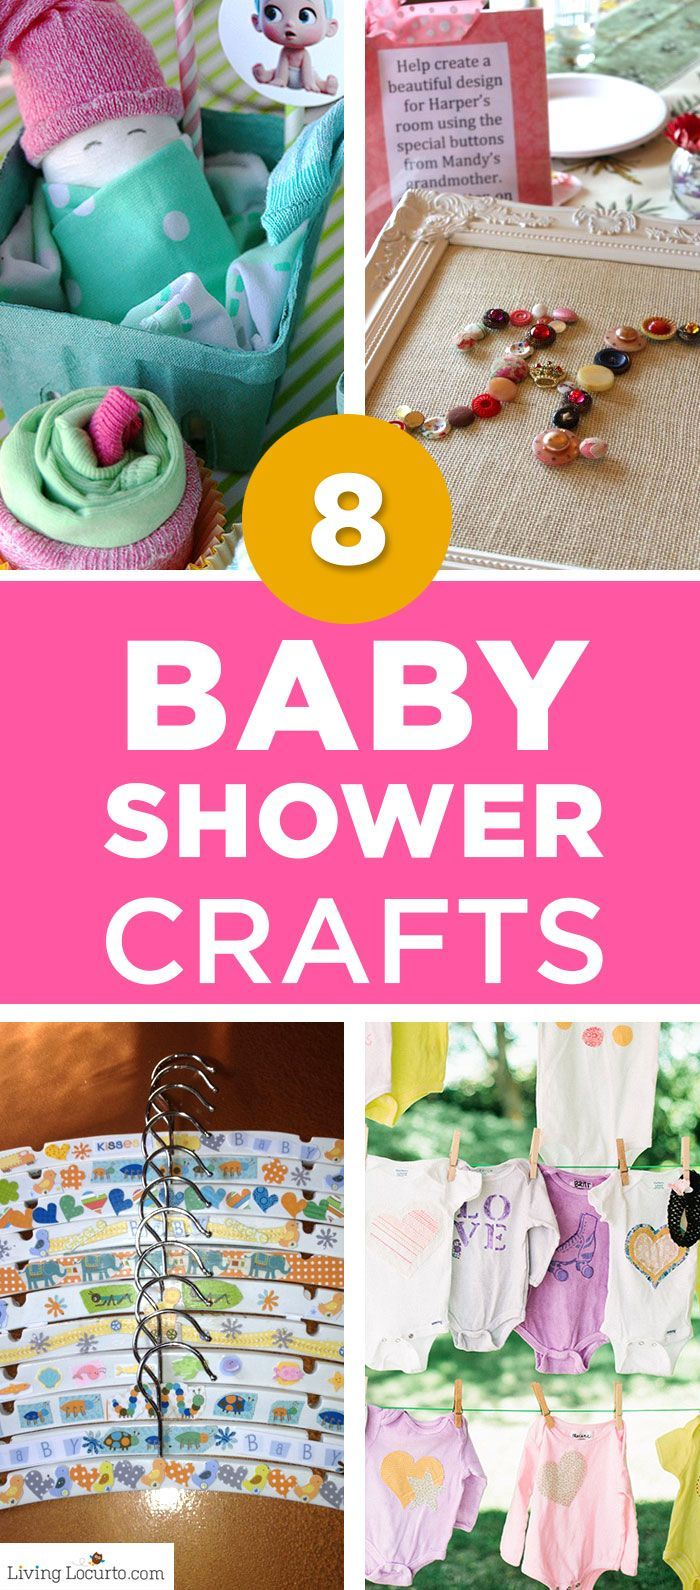 Creative baby crafts for encouraging party guests